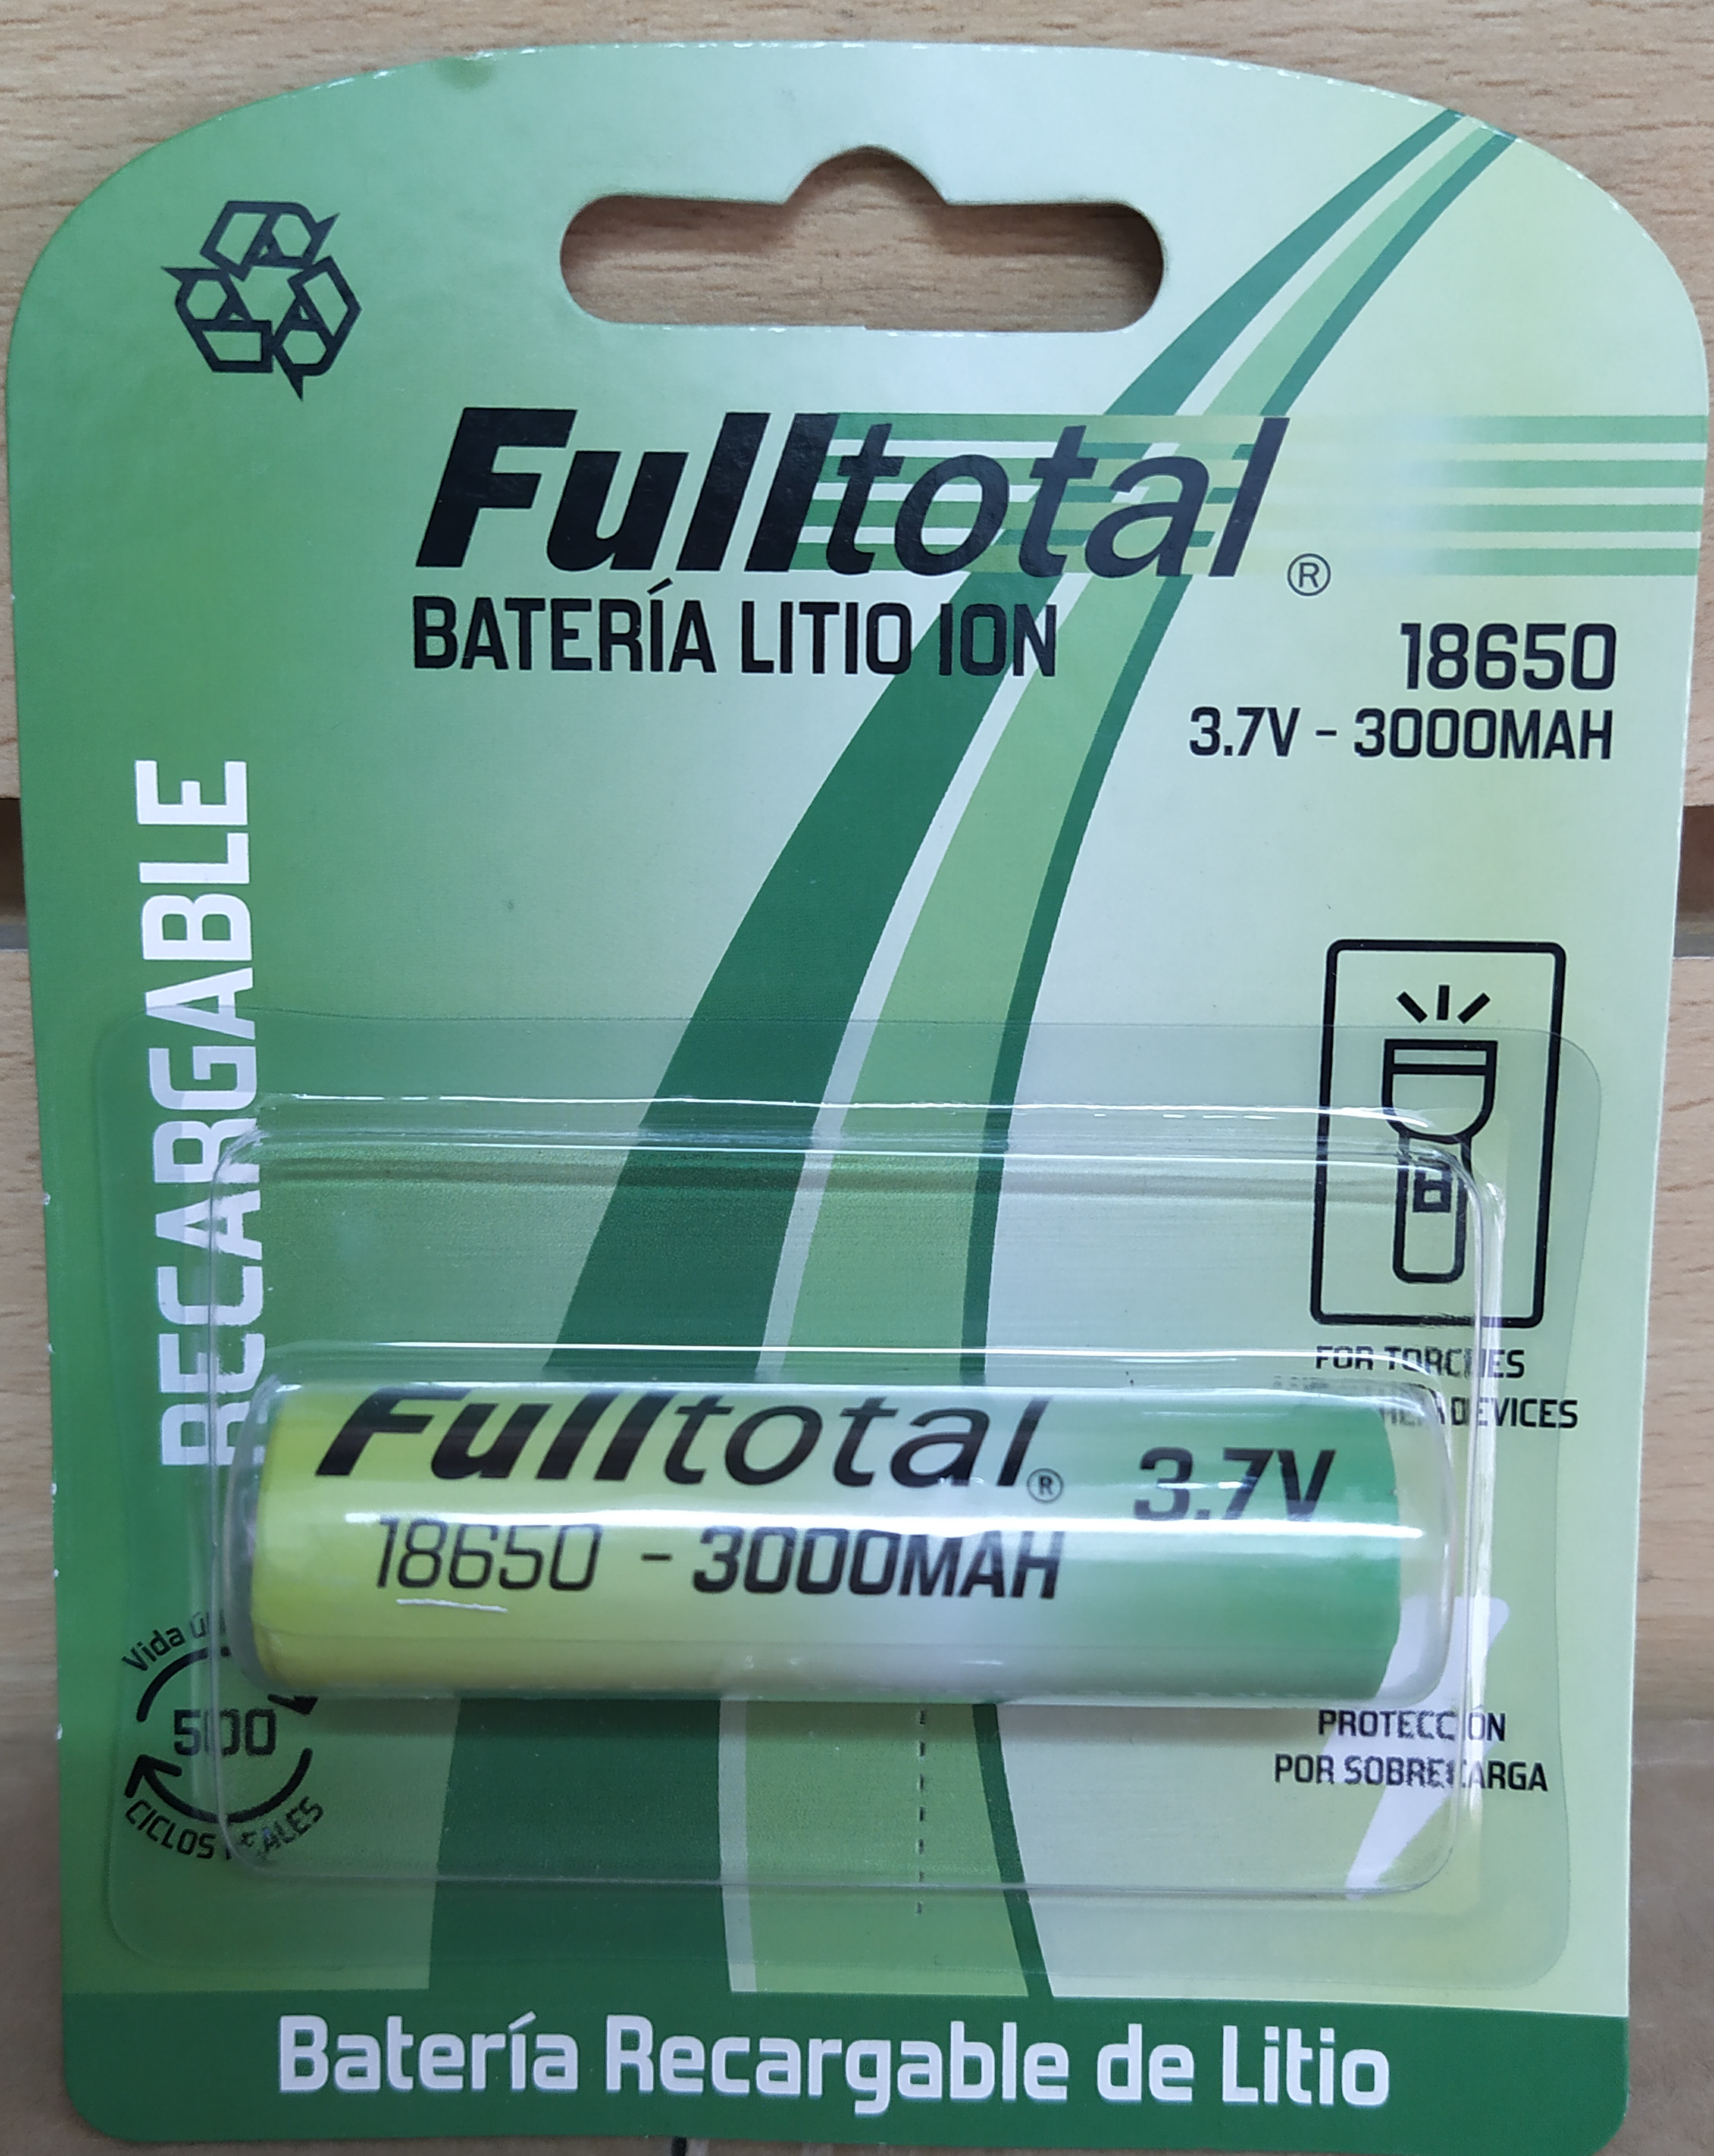 E16 BATERÍA RECARGABLE DE LITIO ION F-TOTAL 18650/3000MAH